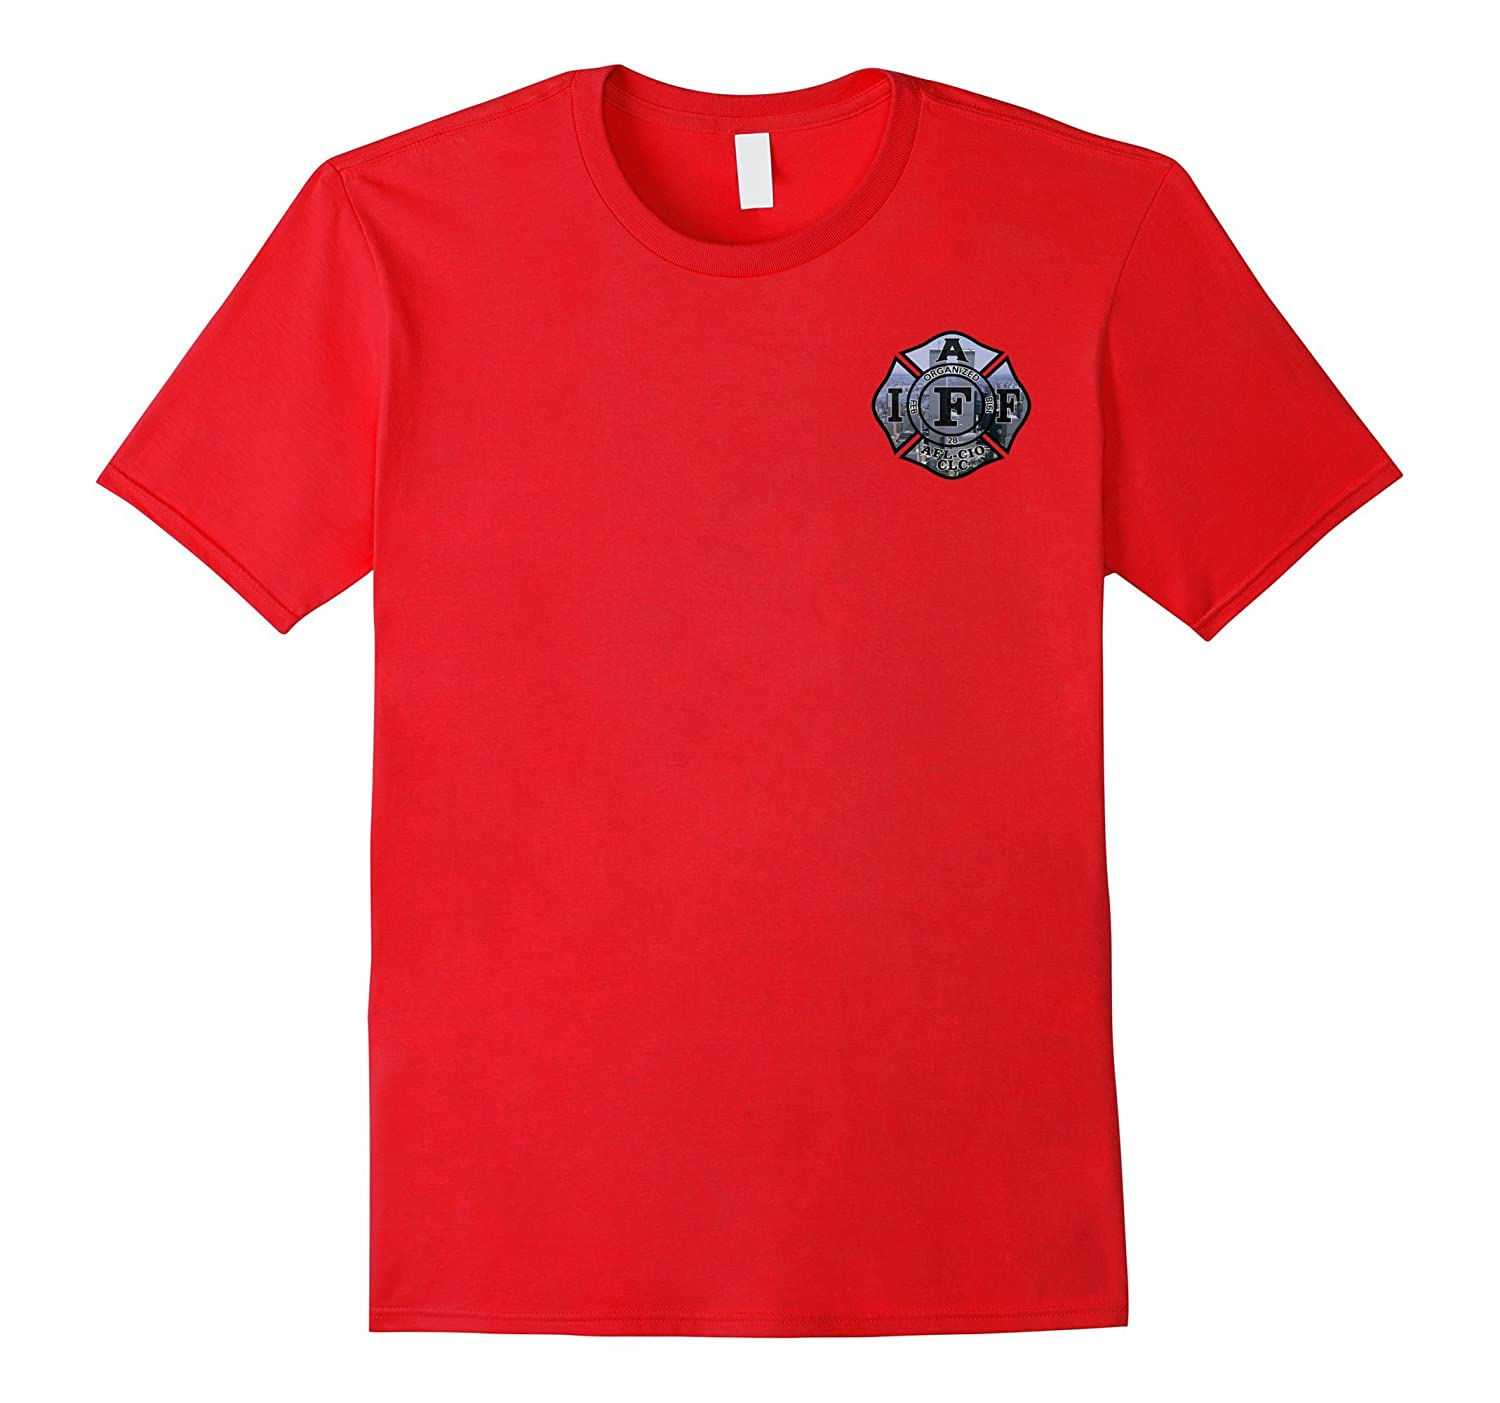 The 9/11 Never Forget IAFF Union Firefighter Shirt-T-Shirt